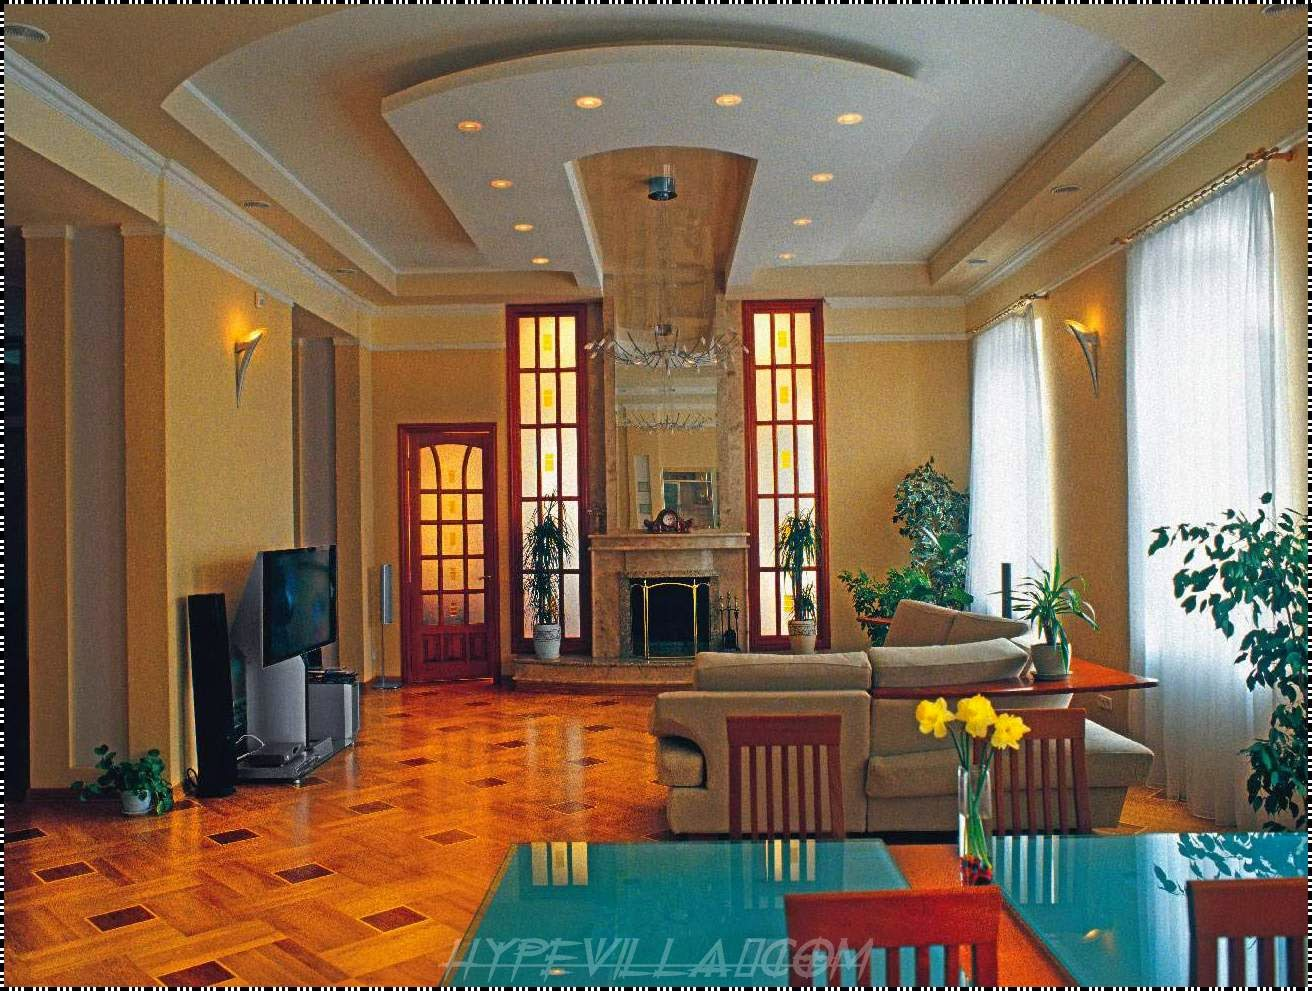 The Most Beautiful House Interior Design Ideas And